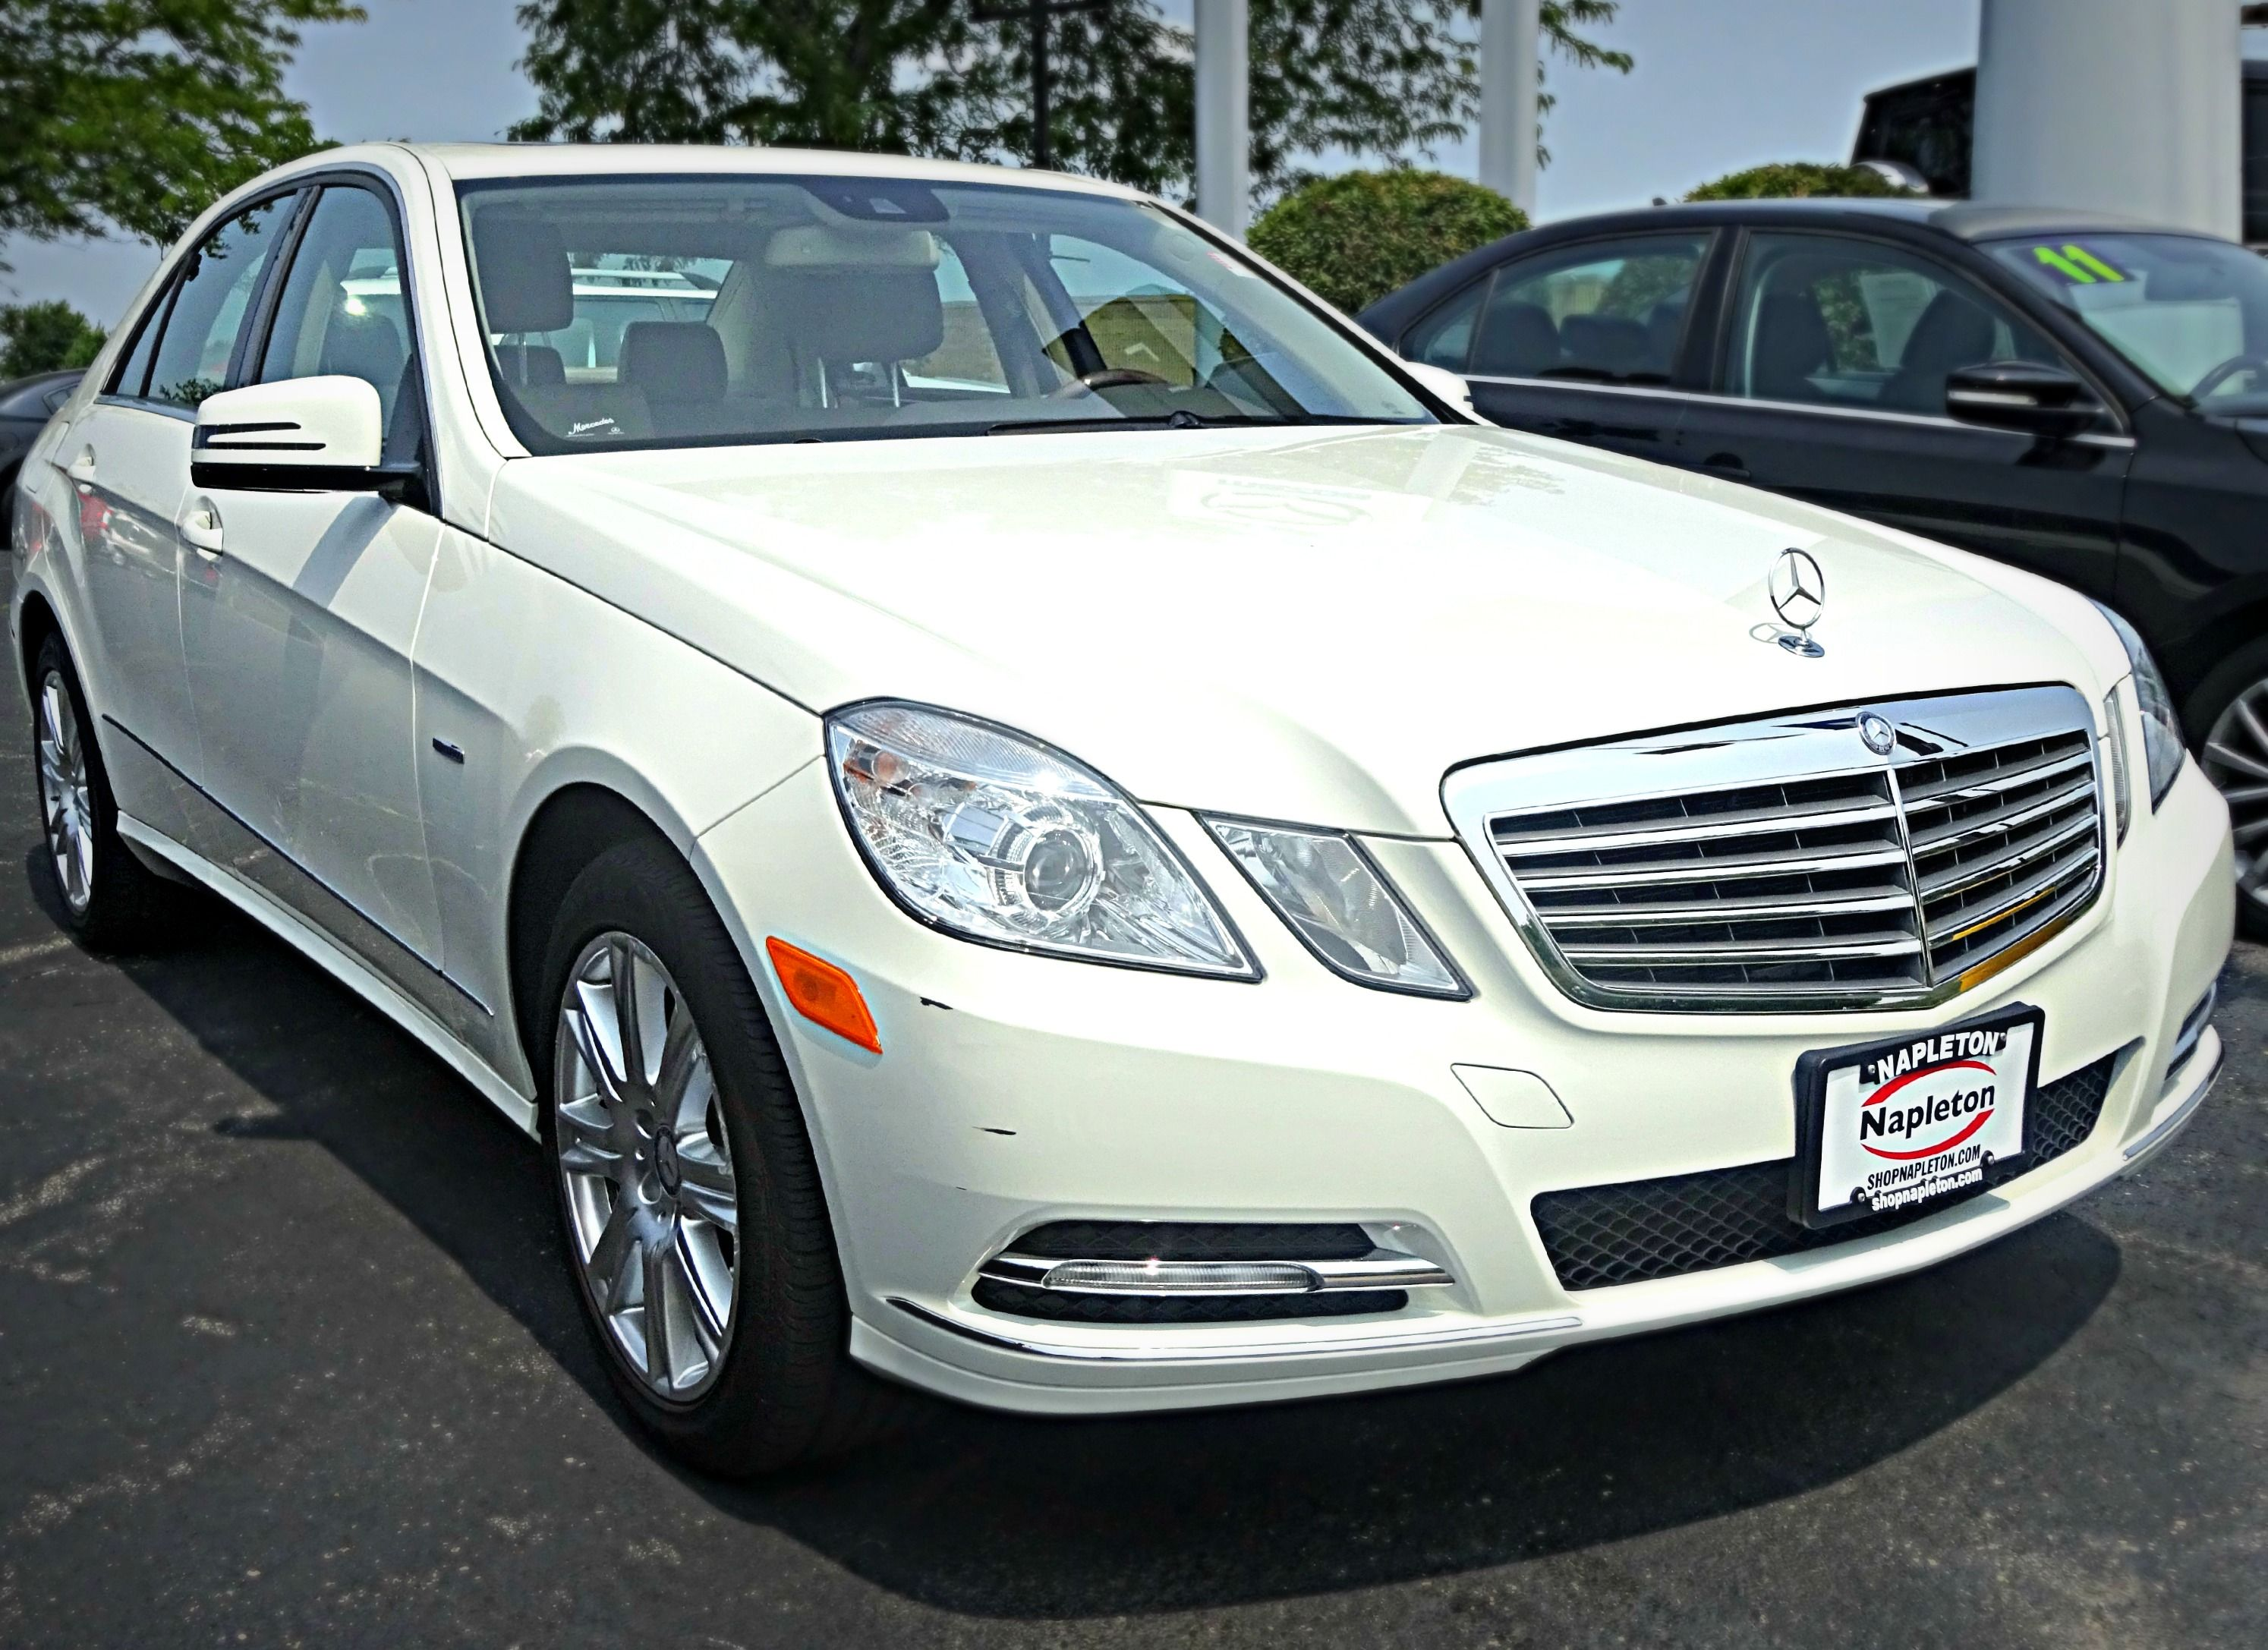 at auction of for house vicari auctions image benz sale a mercedes e biloxi class